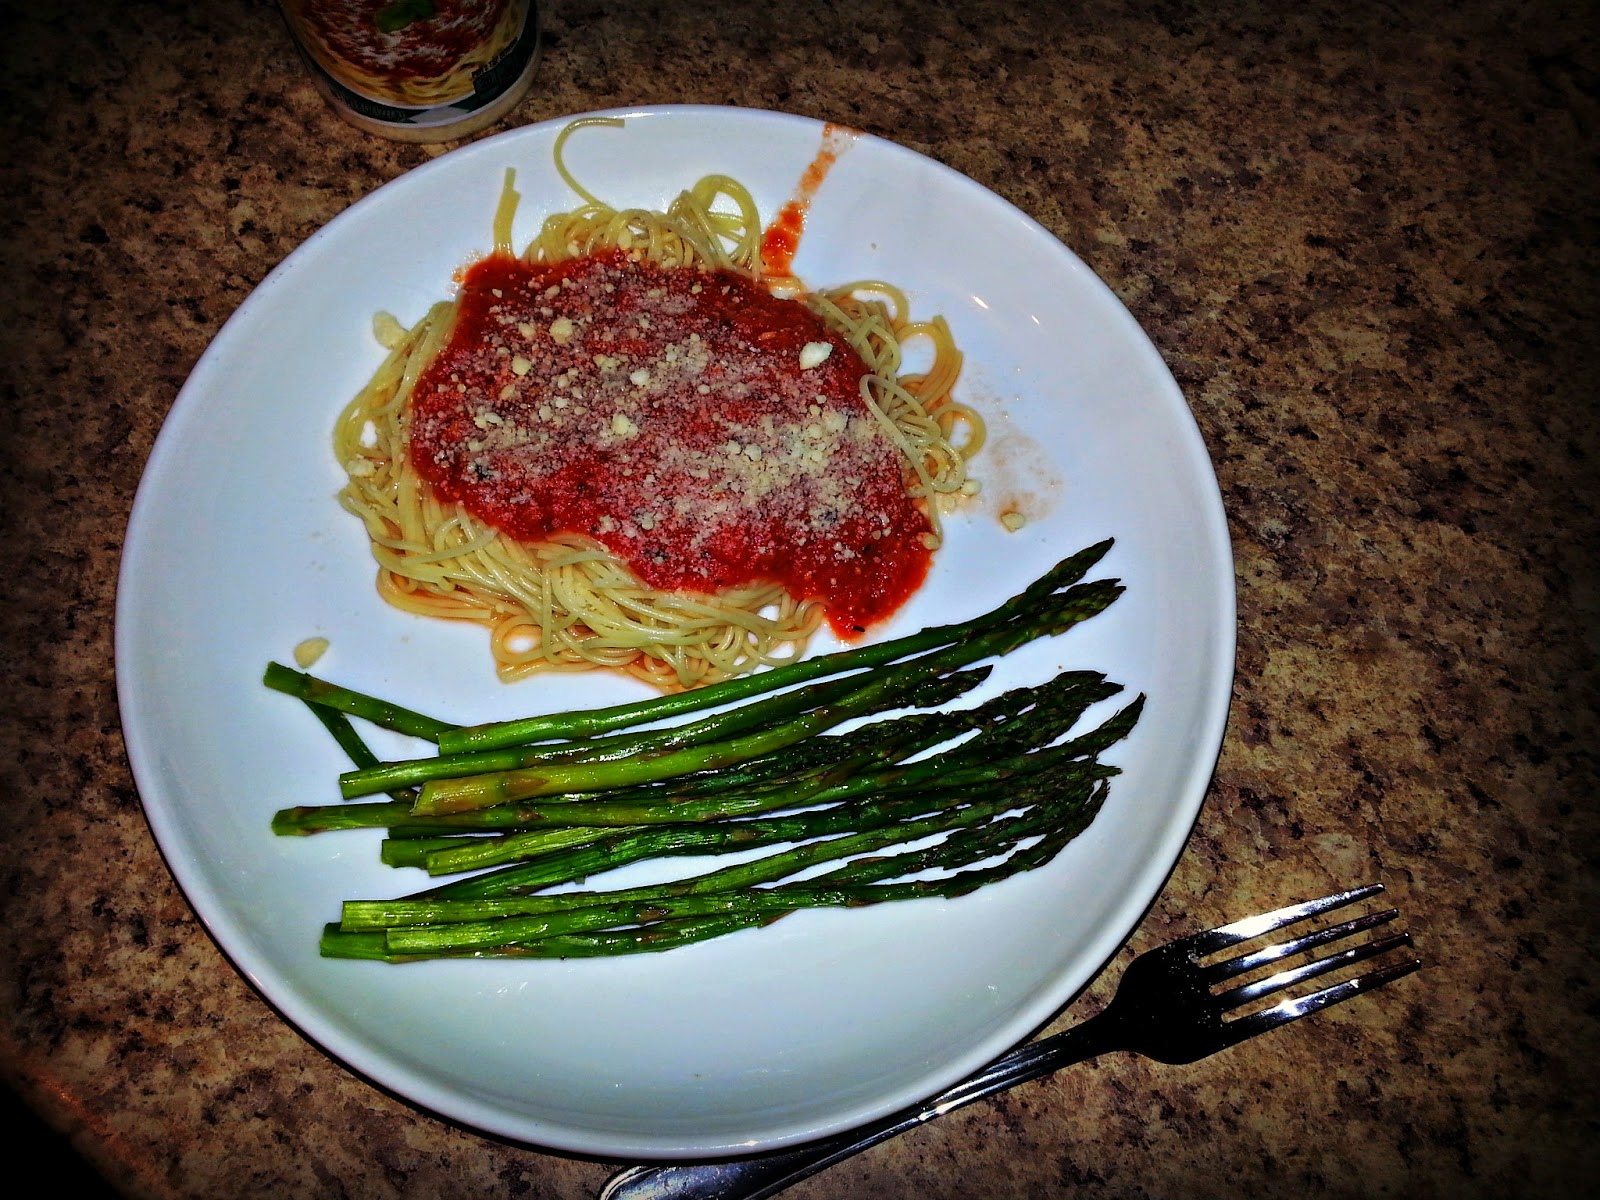 Family Meals on a Budget: Week 1 & 2 Baked Aspargus and Homemade Pasta